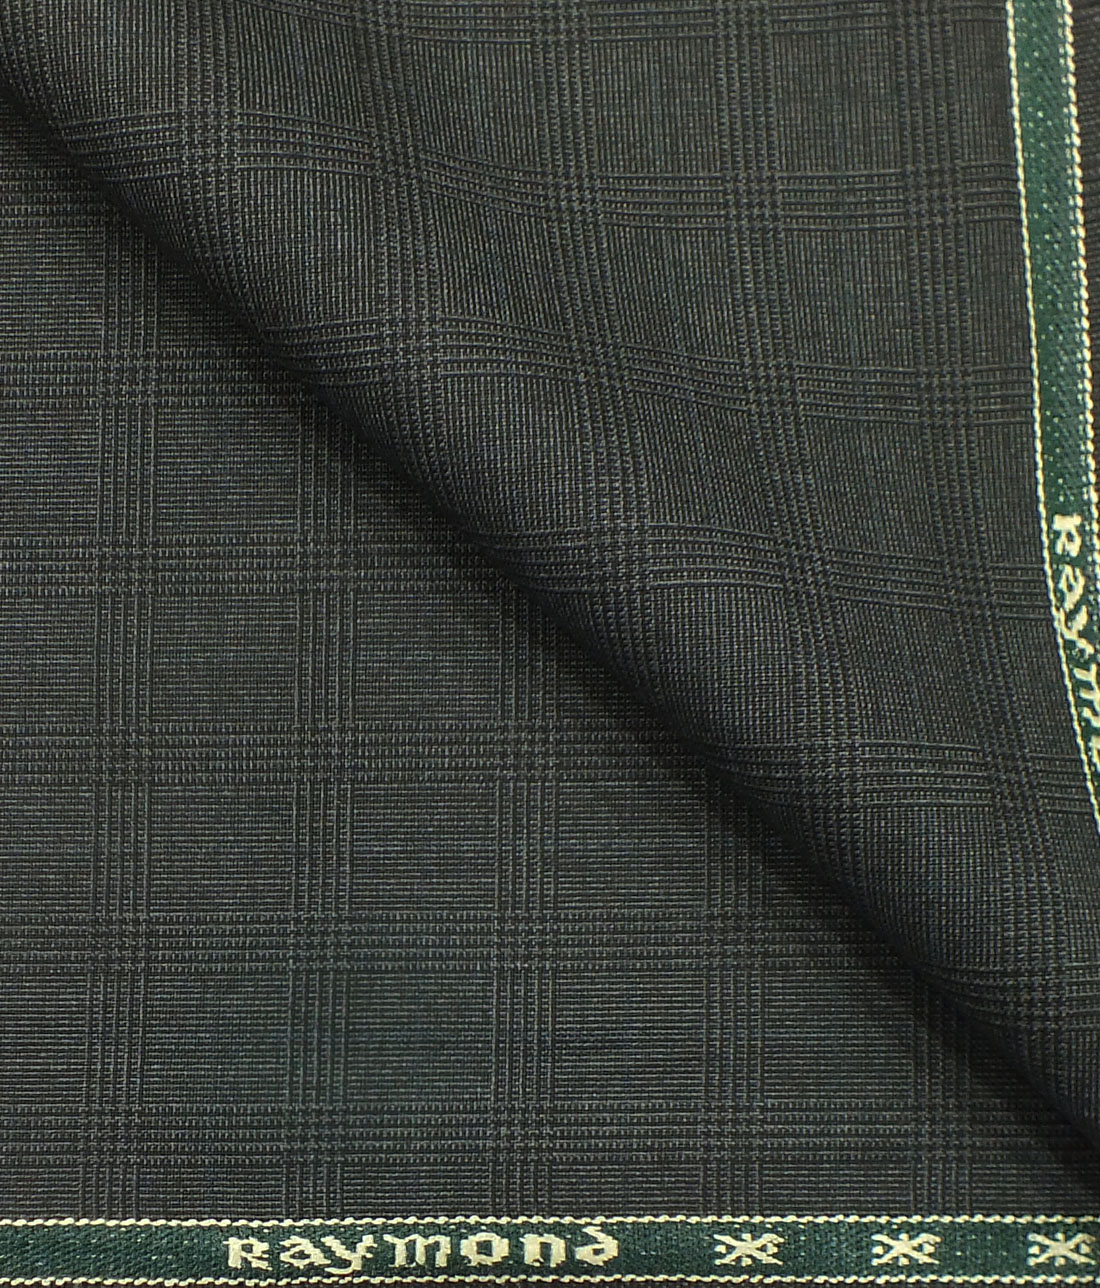 145e3349c Raymond Dark Grey Self Broad Checks Poly Viscose Trouser or 3 Piece Suit  Fabric (Unstitched - 1.25 Mtr)